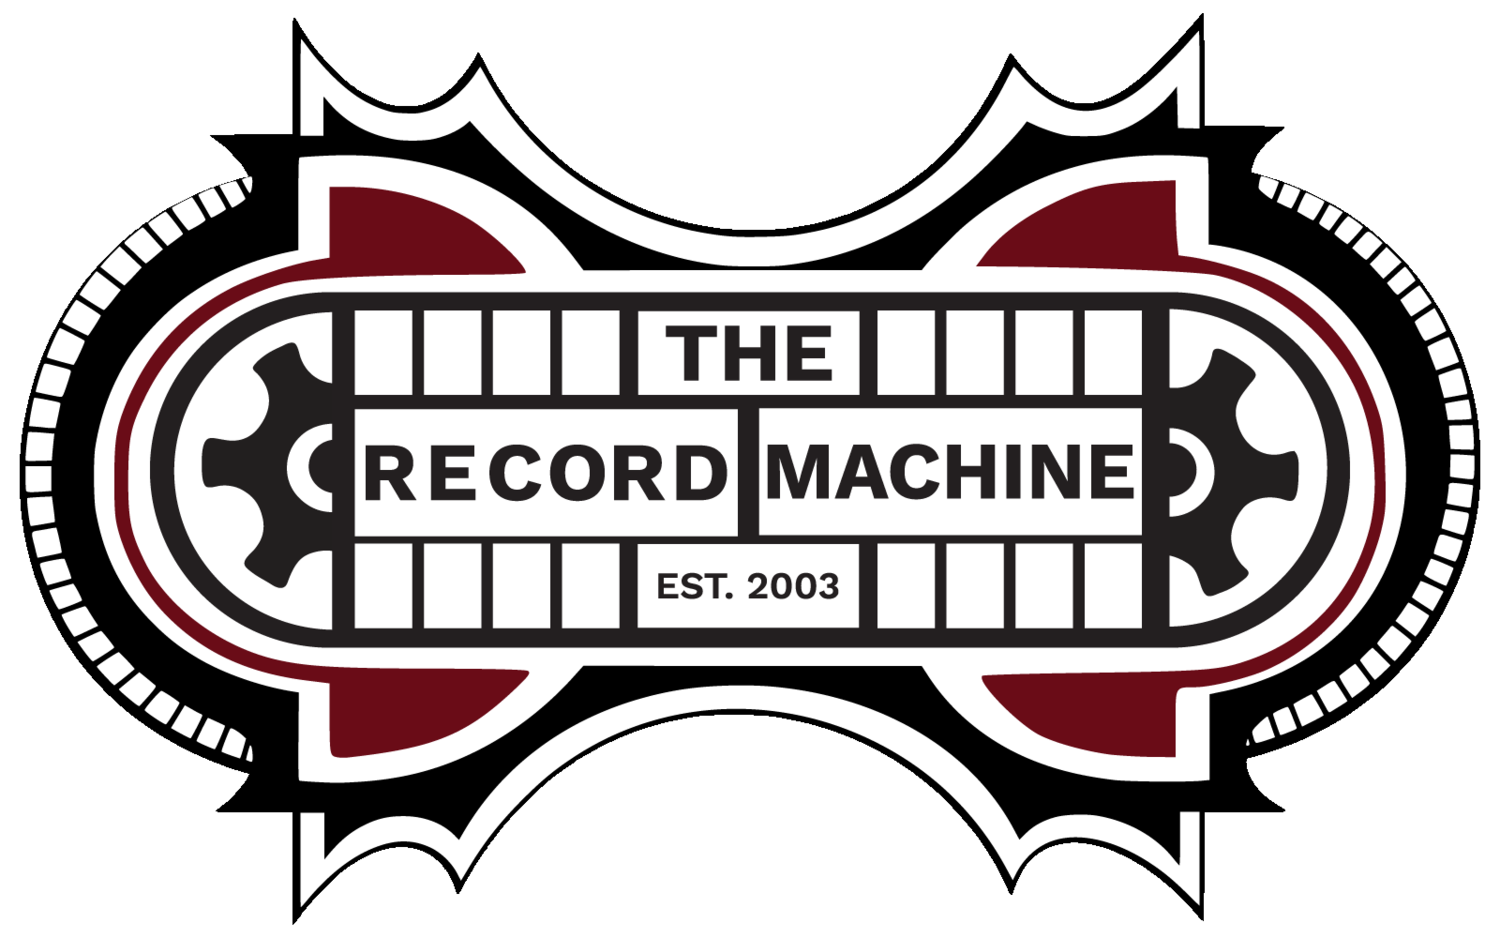 The Record Machine